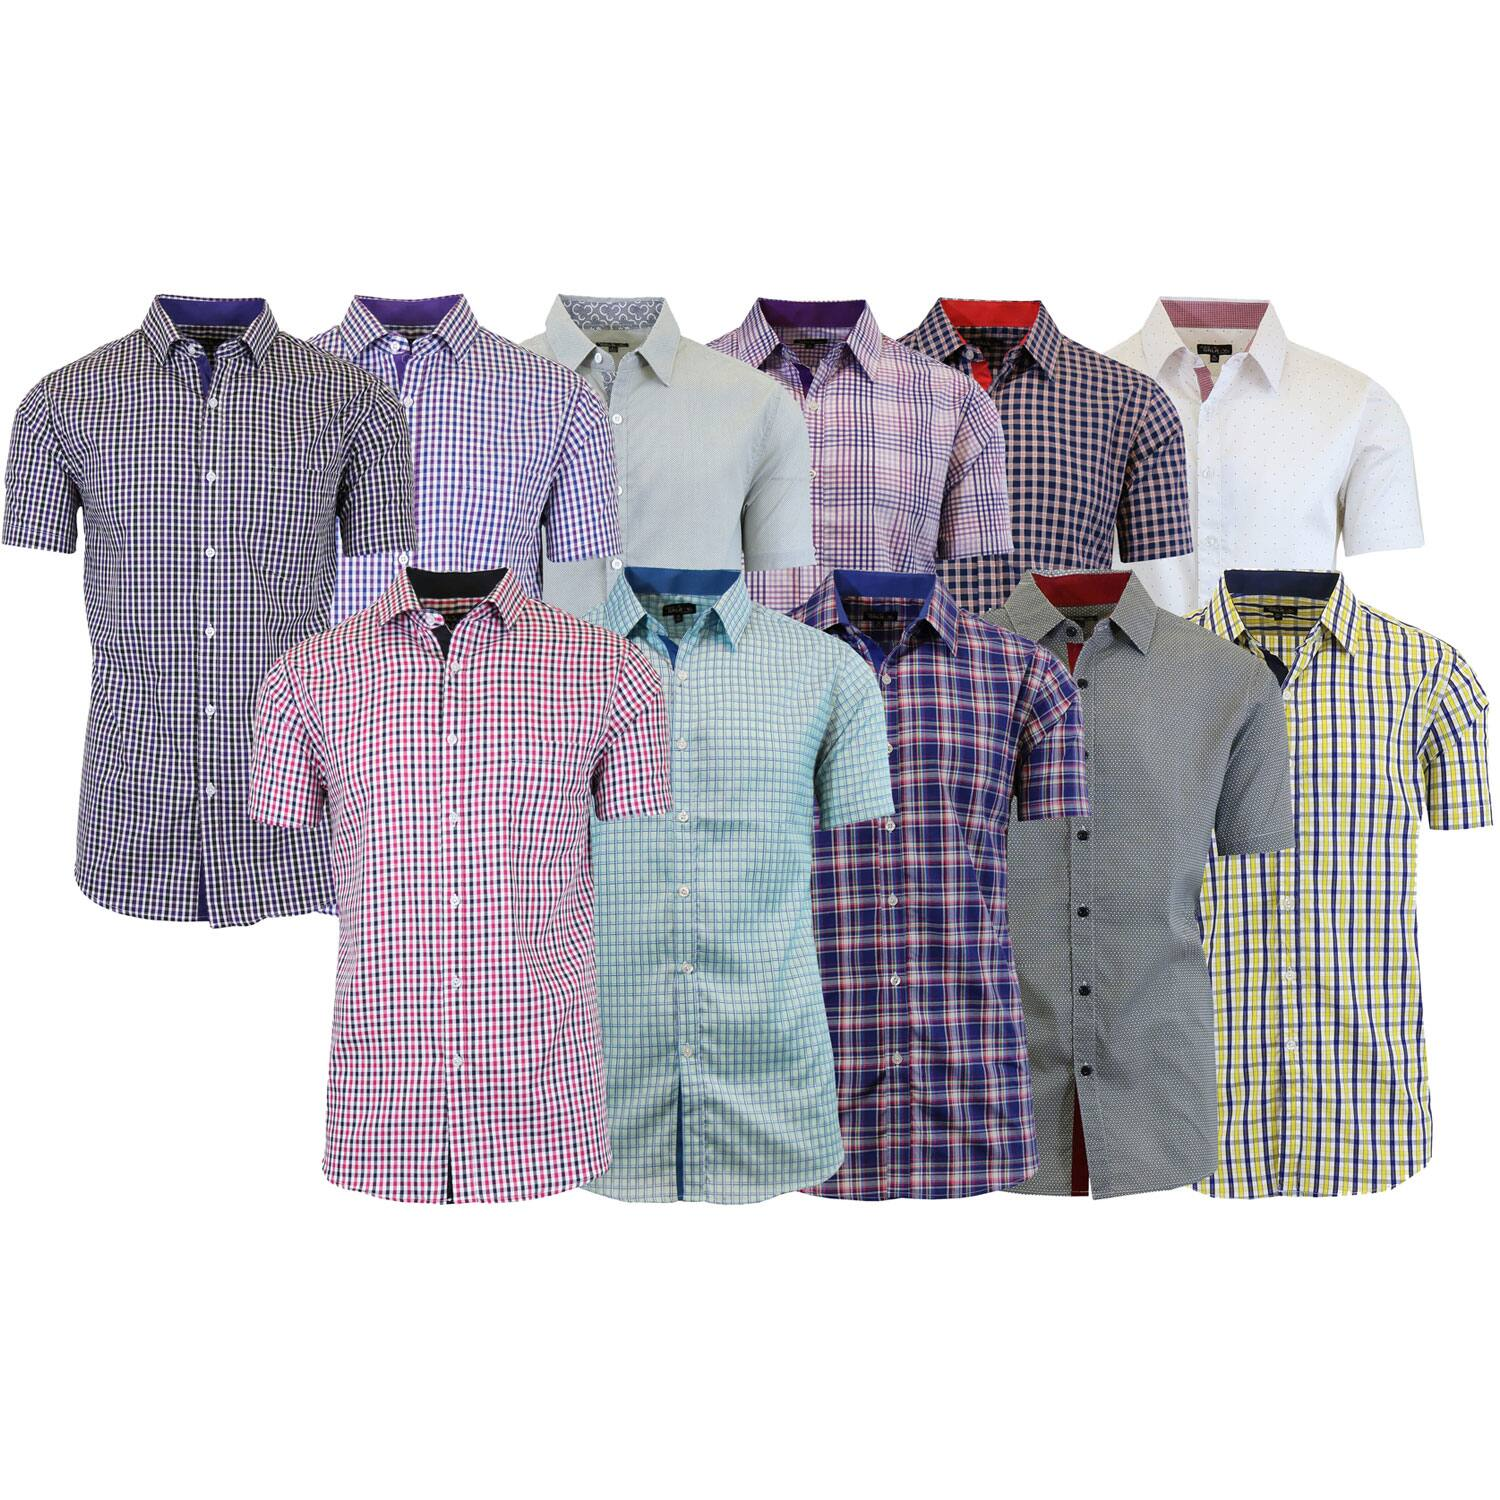 Men's 4 Pack Assorted Short Sleeve Patterned Dress Shirts 100% Cotton - $21.69 + Free Shipping